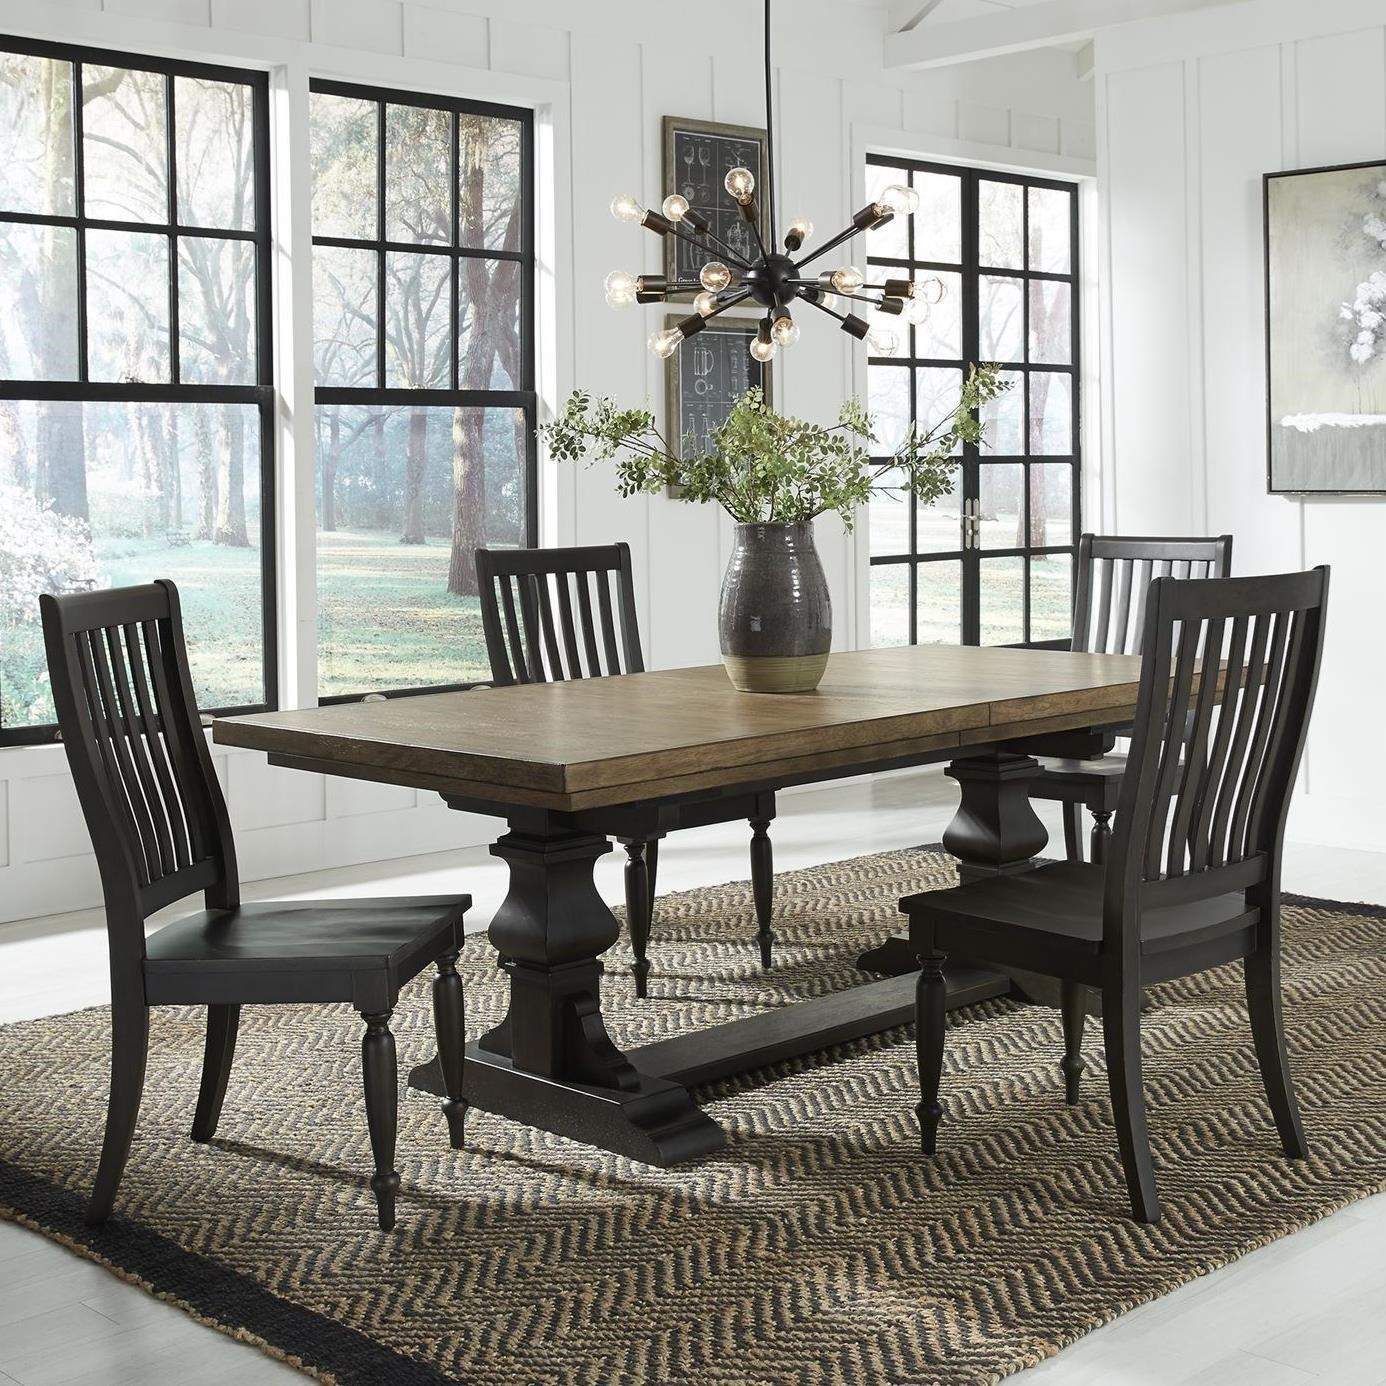 Harvest Home 5-Piece Trestle Table Set by Libby at Walker's Furniture